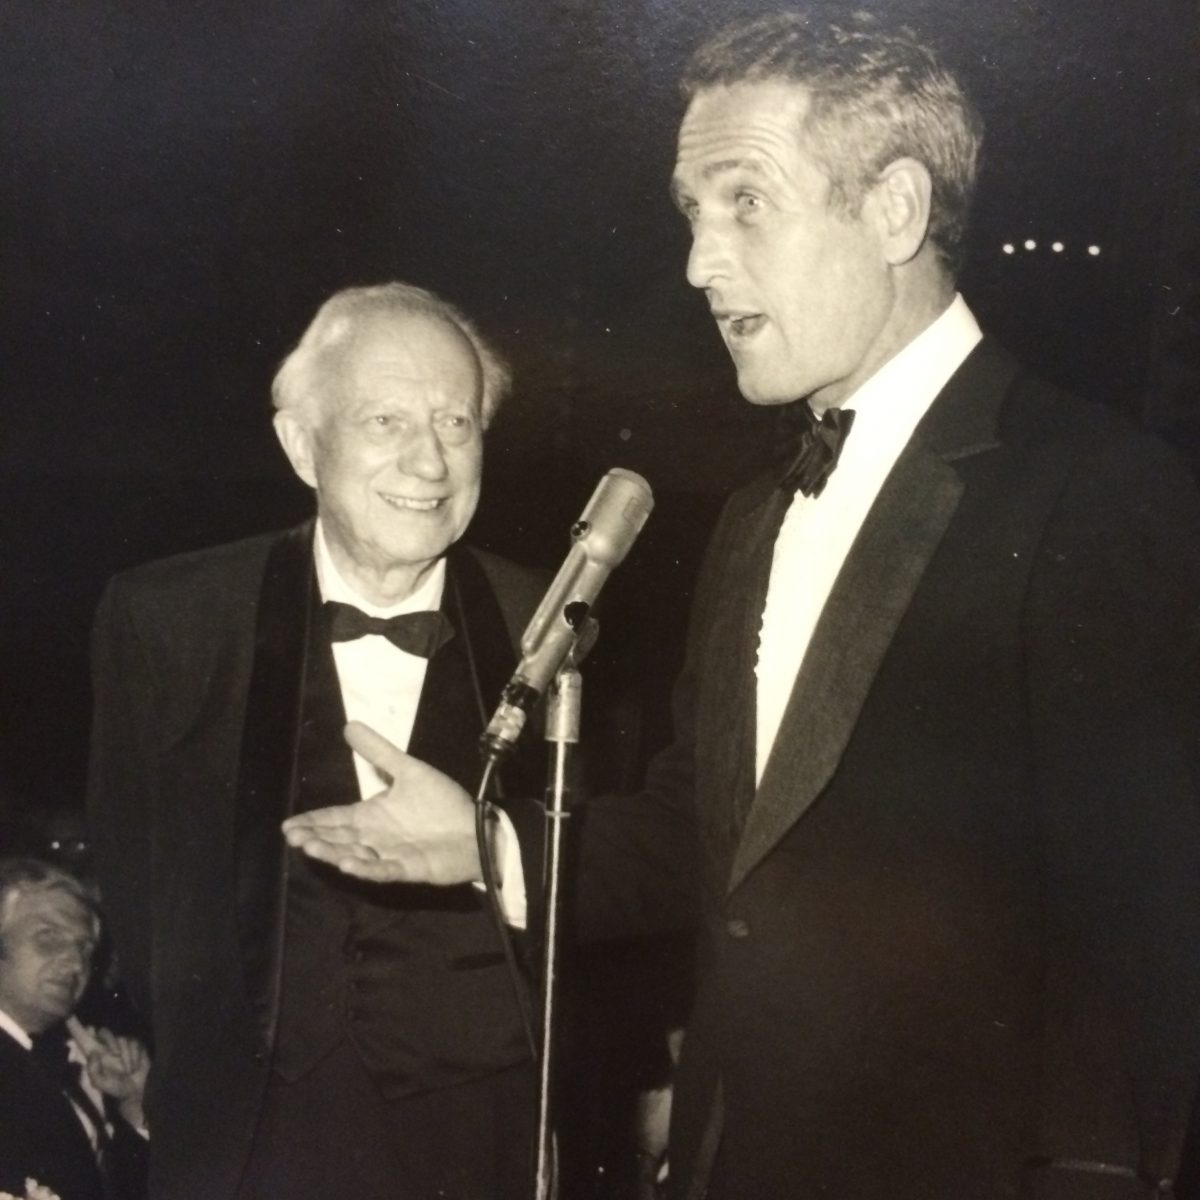 Clark Eichelberger with Paul Newman